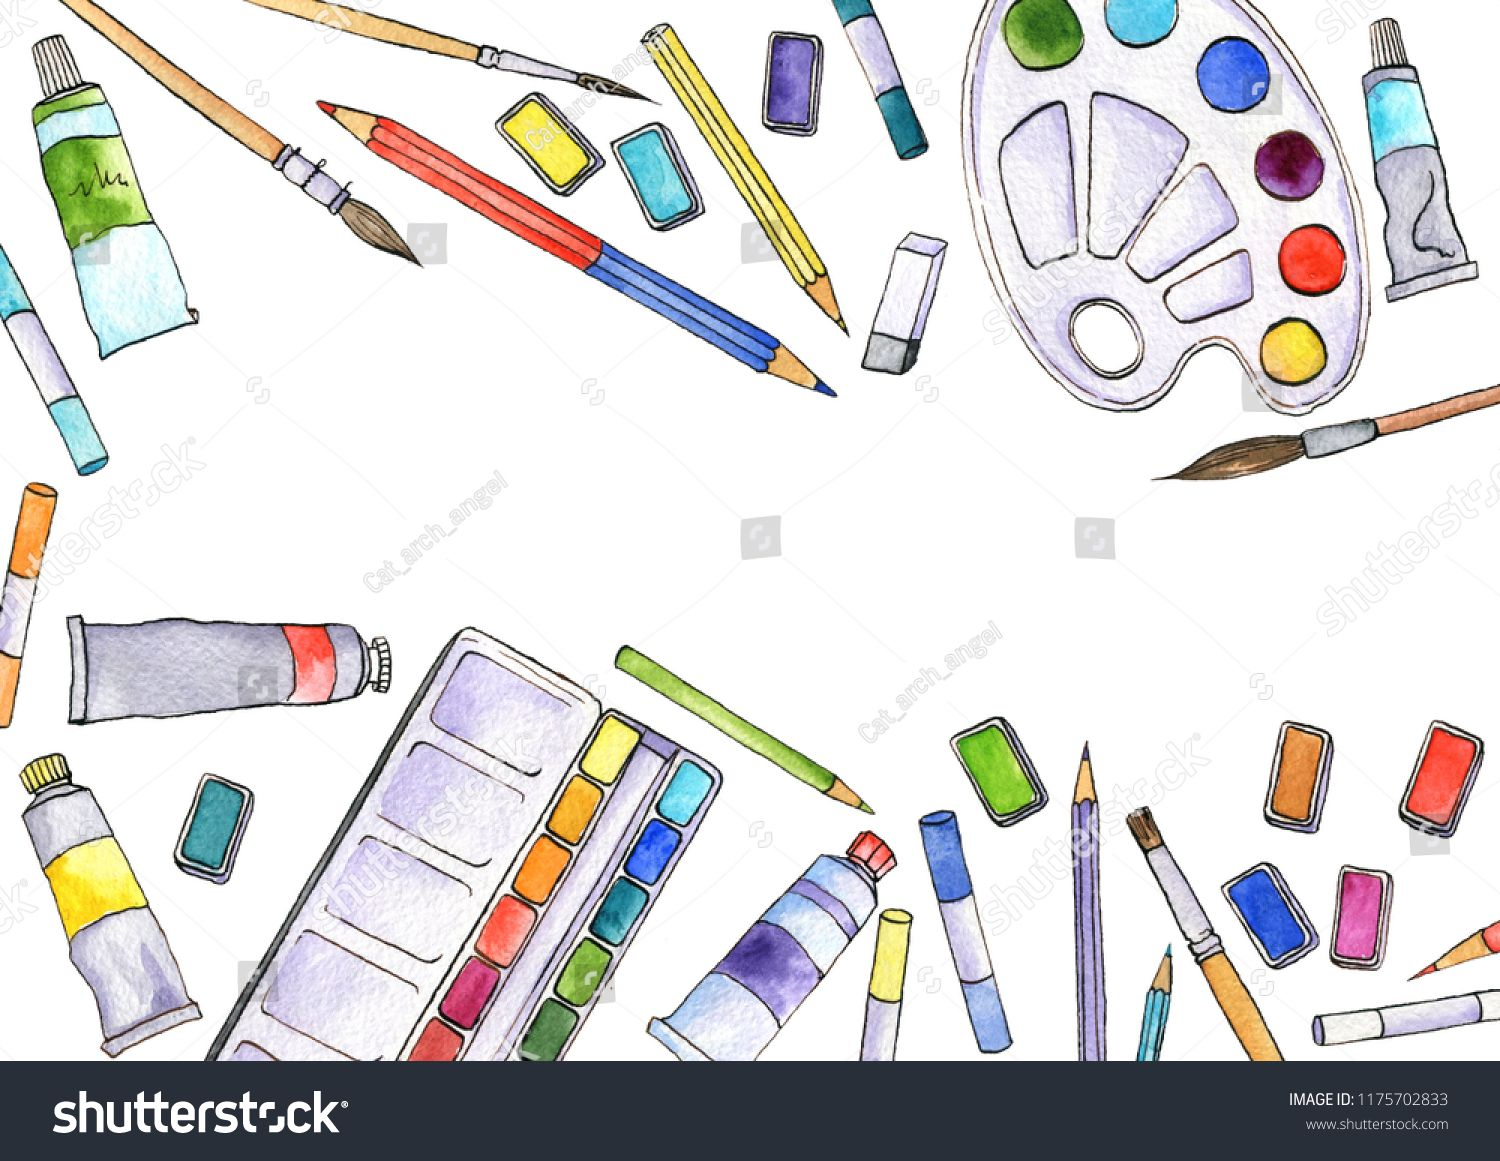 Watercolor Artistic Workspace Hand Drawn Creative Background Art